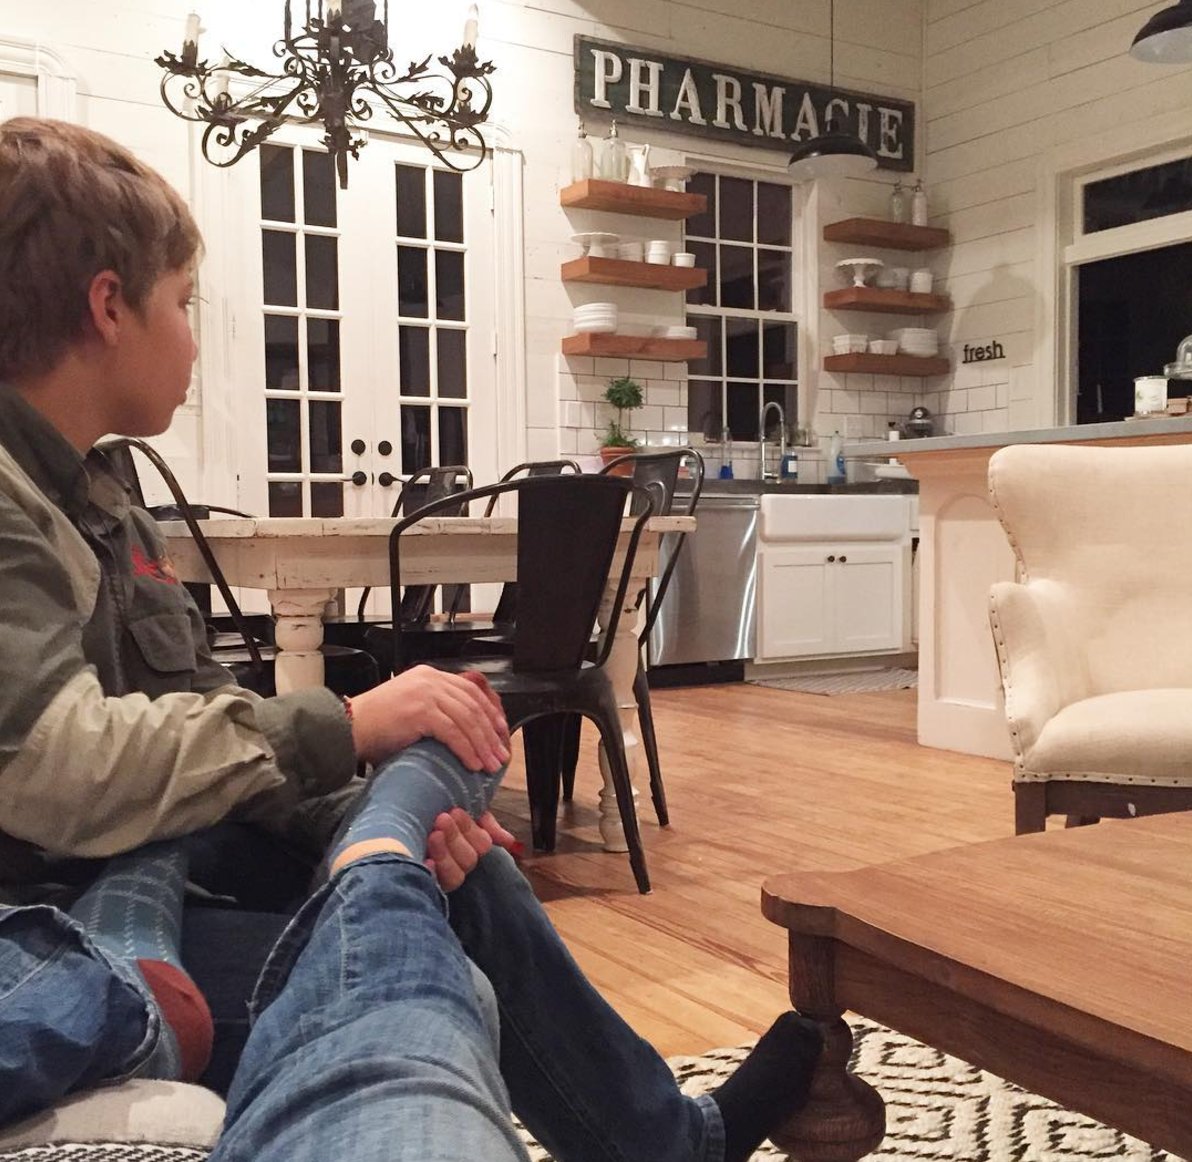 All of the Sweet Family Moments Chip and Joanna Gaines Have Shared of Their Life at Home